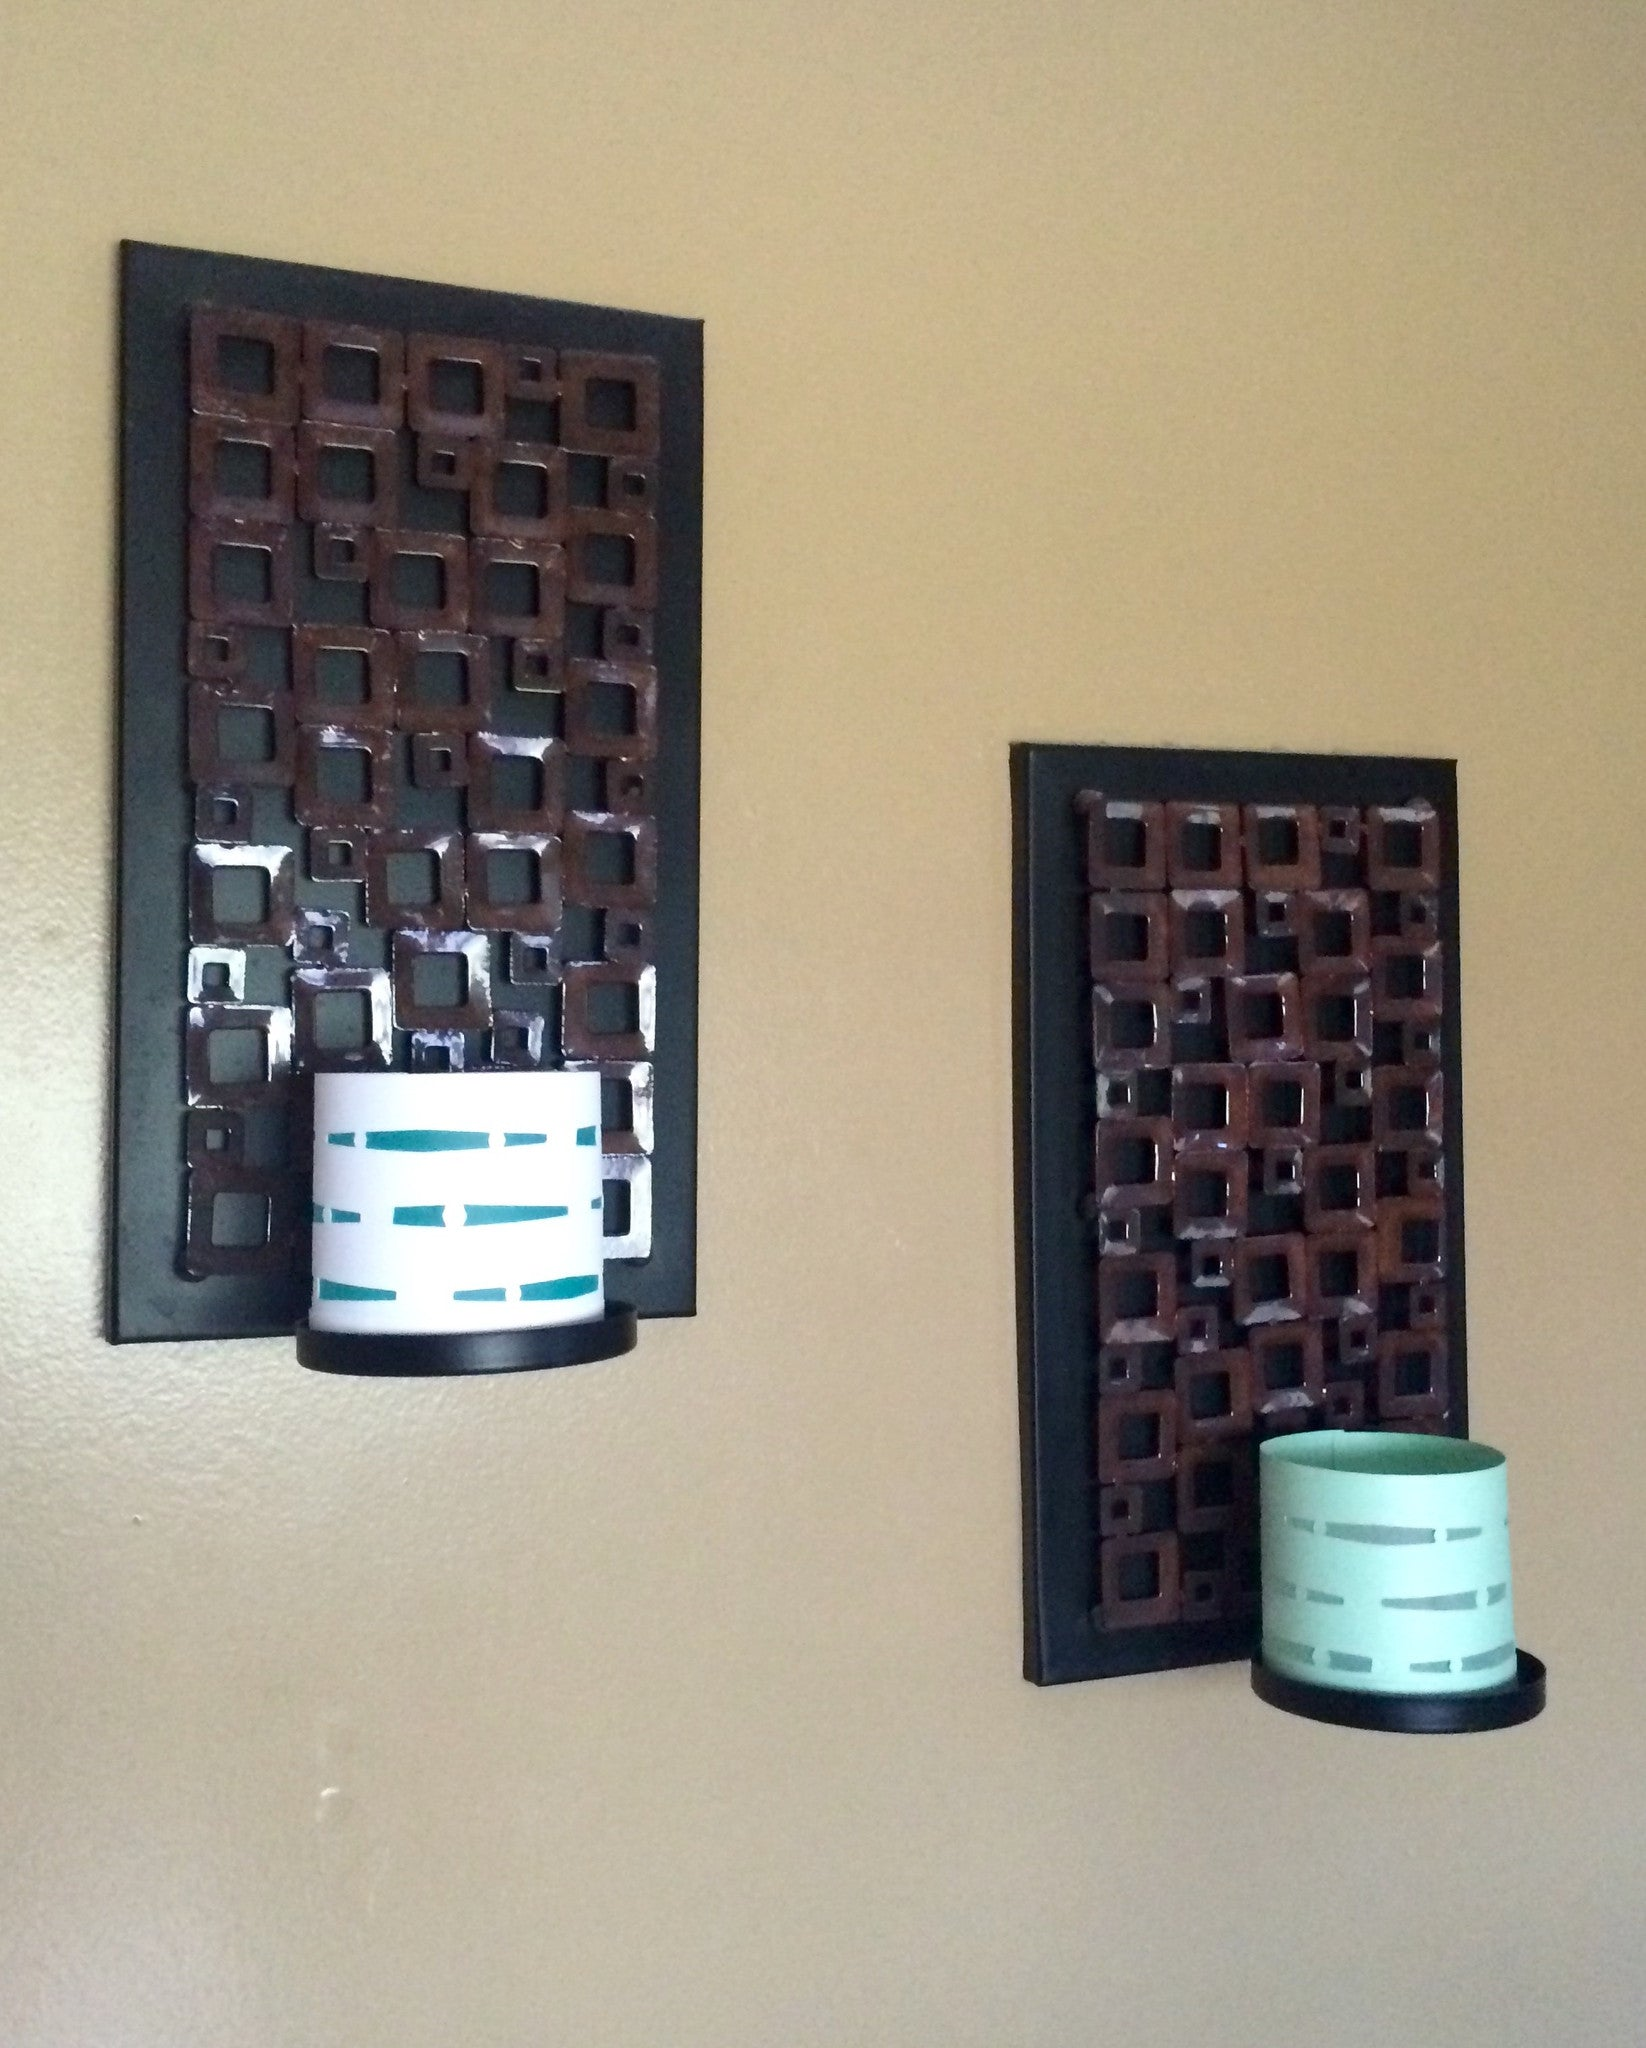 Wave candle holders hung on wall display industrial decor